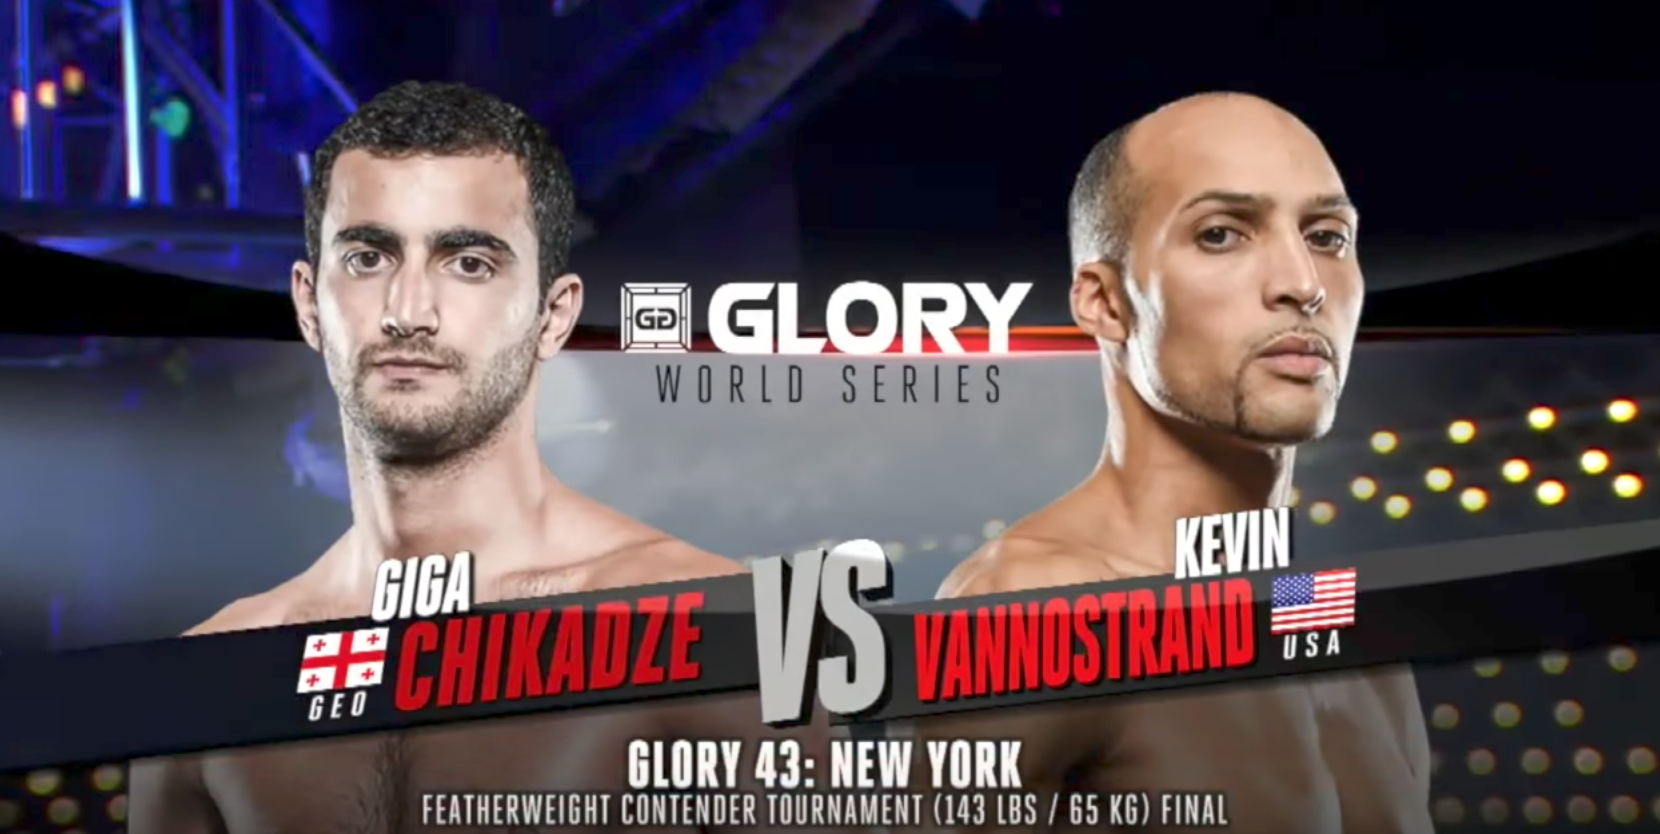 FULL MATCH - Giga Chikadze vs. Kevin Vannostrand - Tournament Finals: GLORY 43 New York